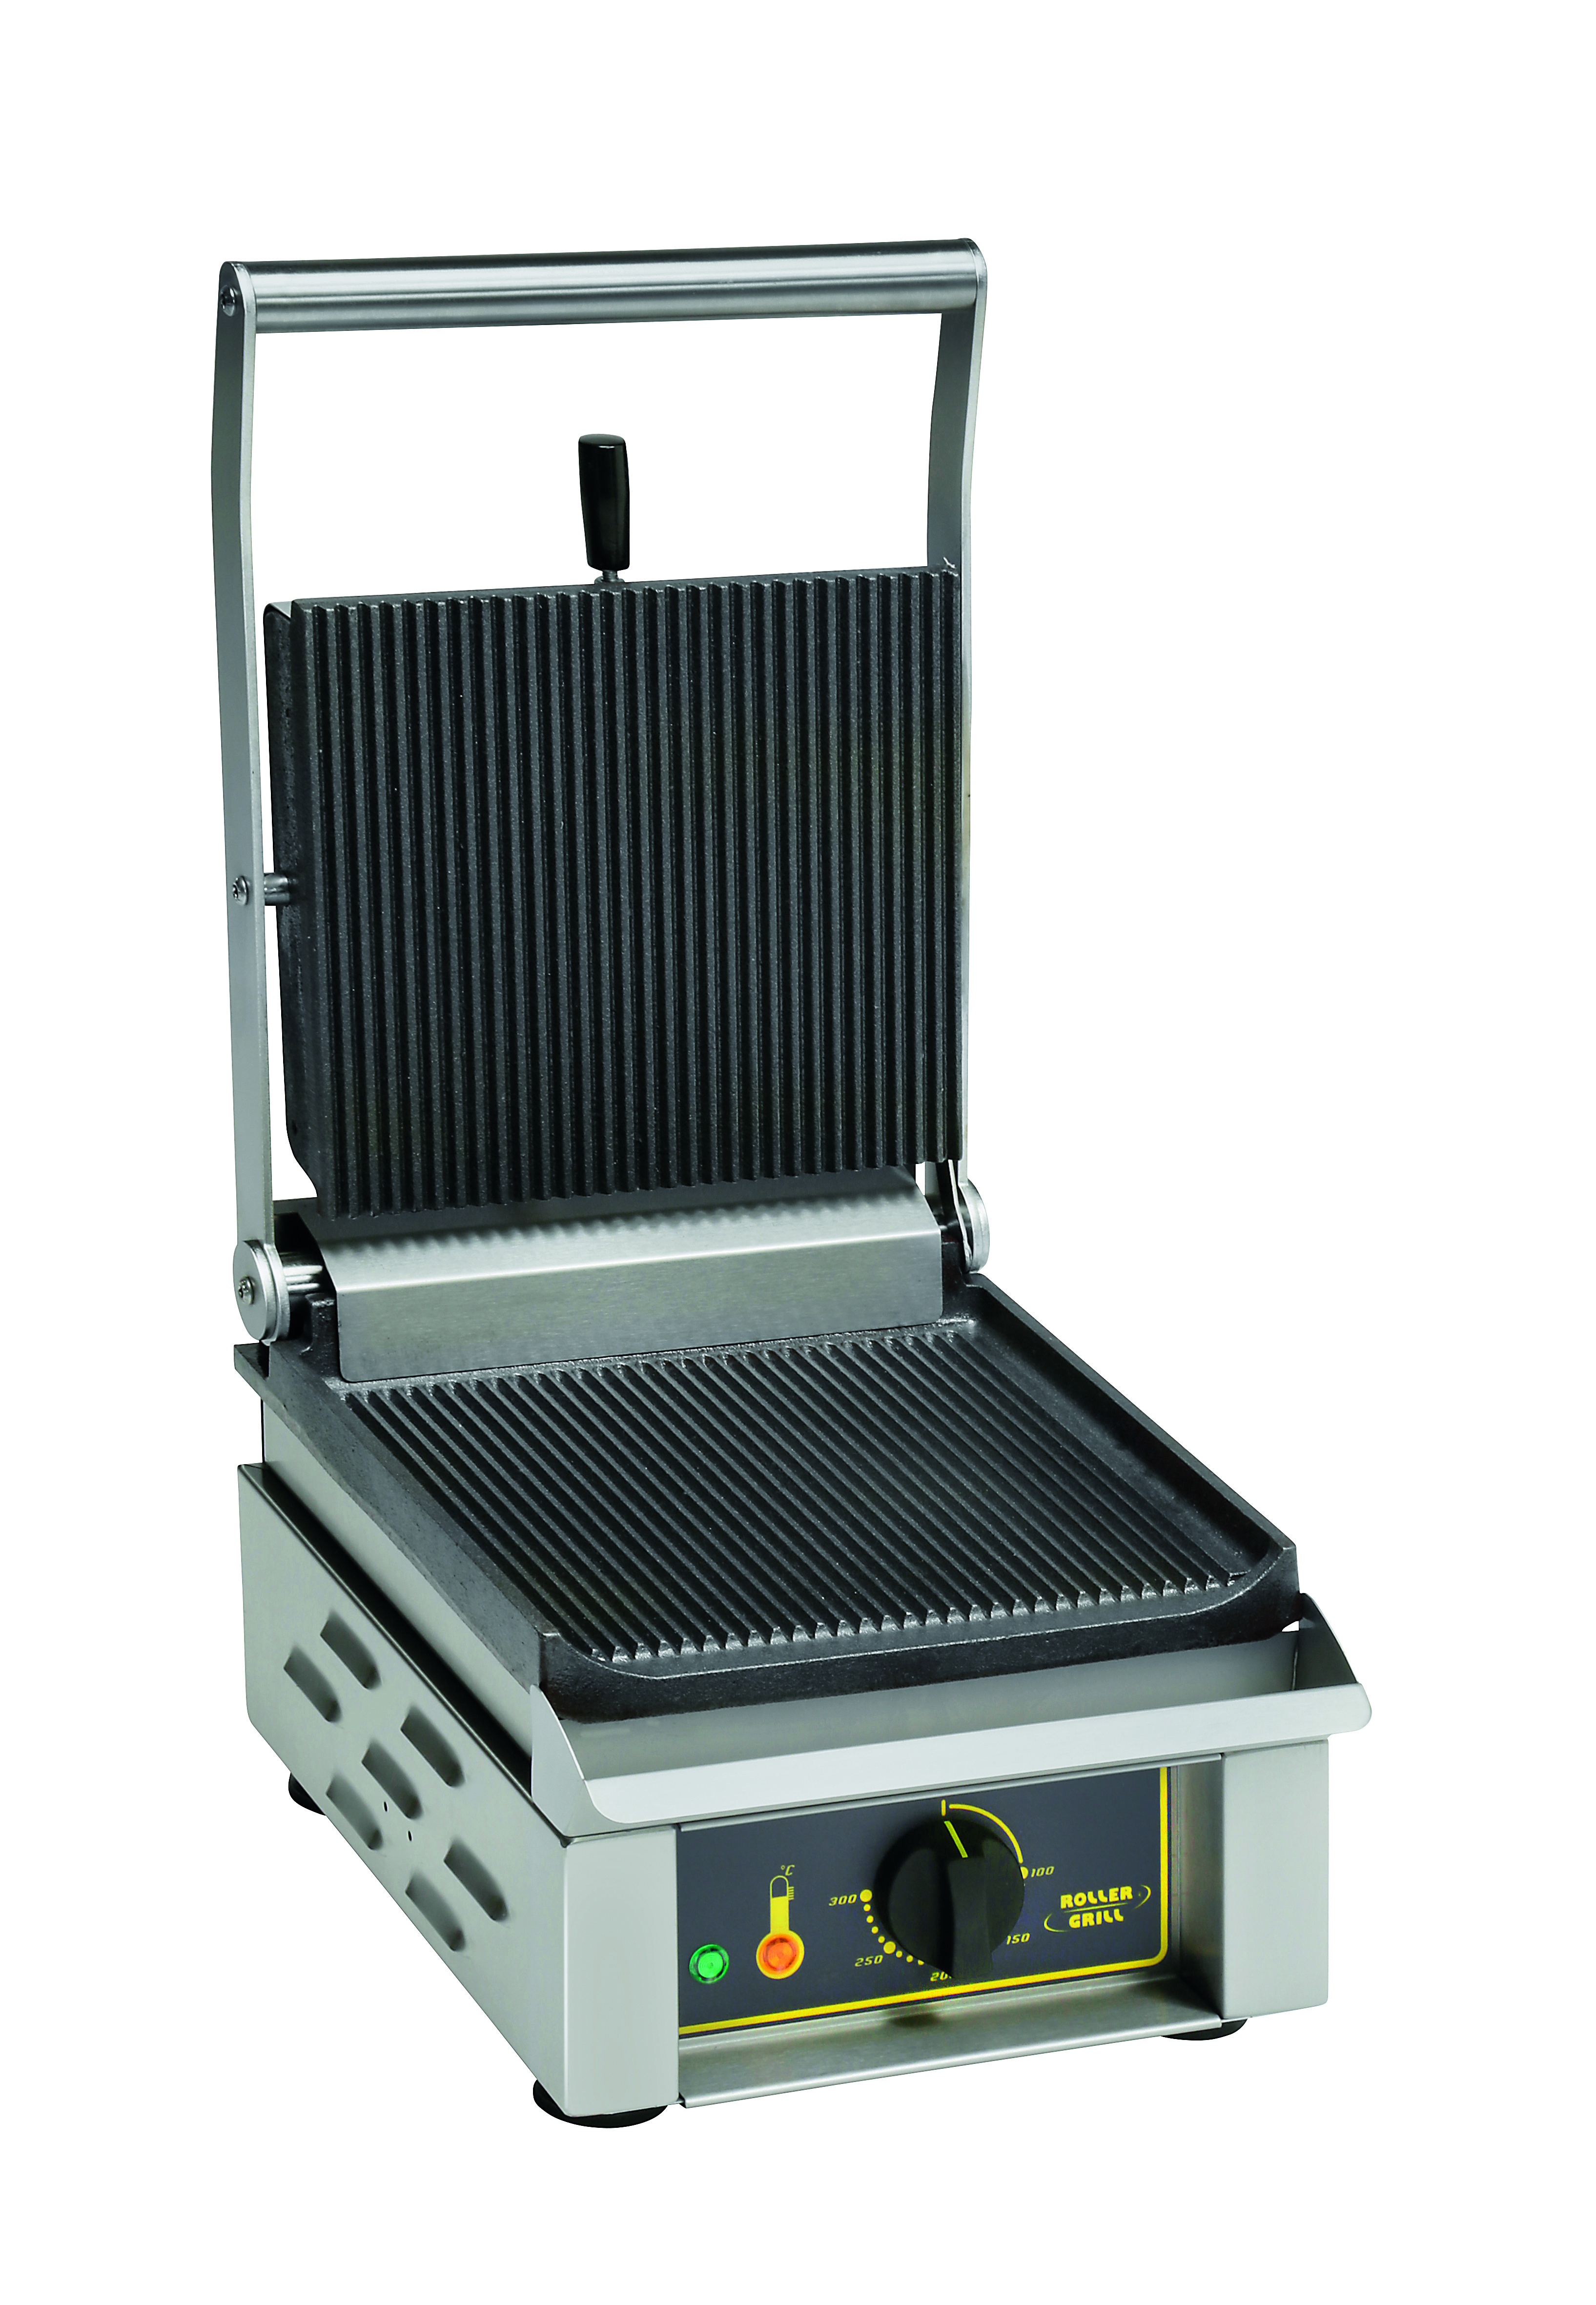 CONTACT-GRILL PETIT MODELE